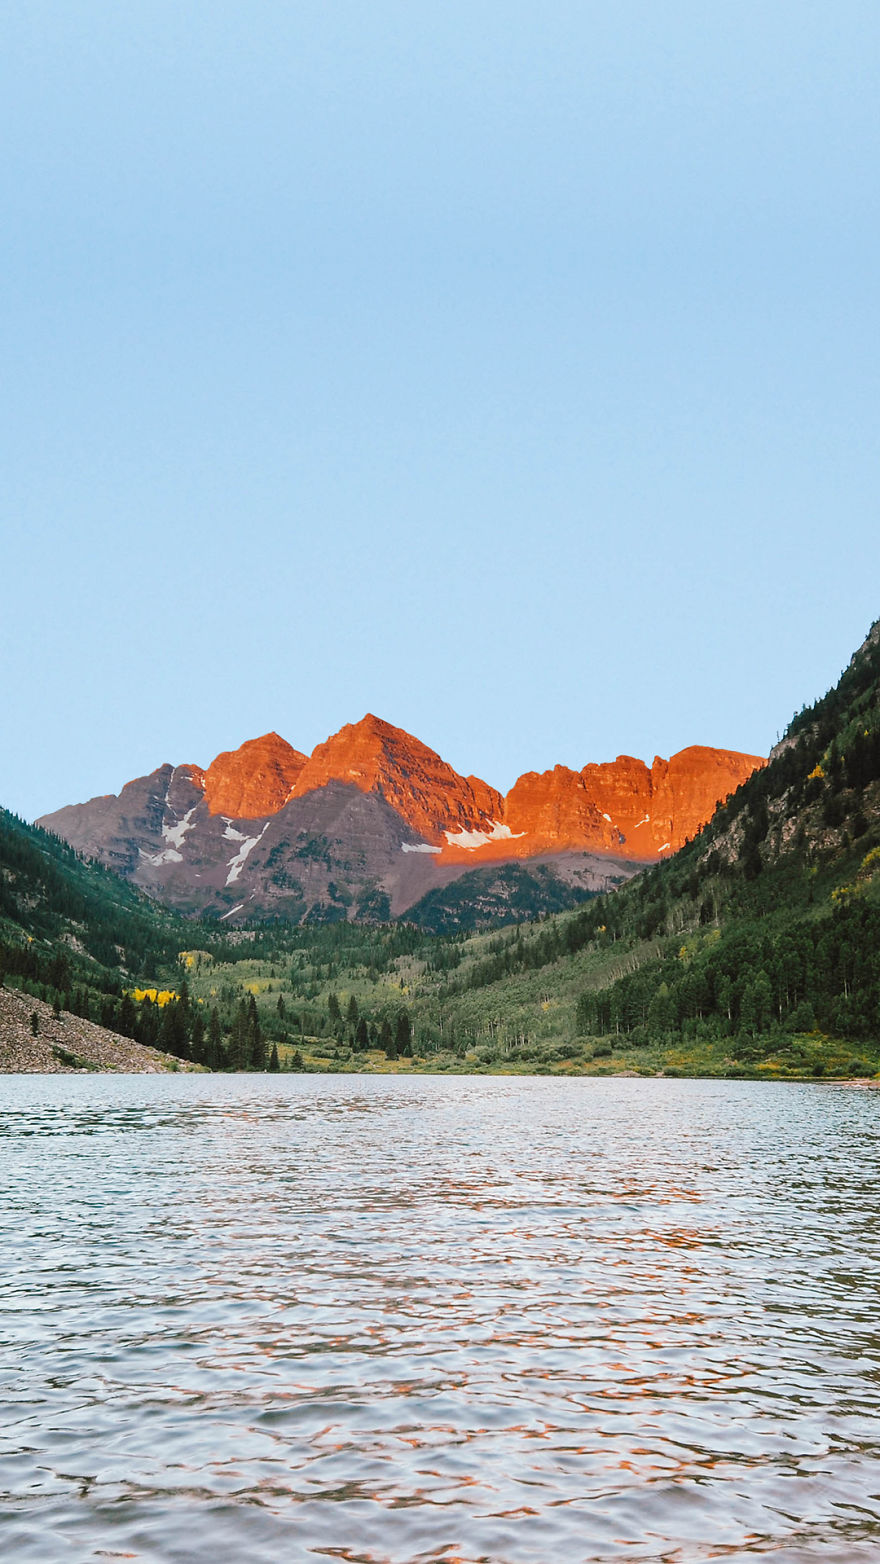 This Time He Aims To Produce The Next Generation Of Wallpapers For Smartphones Users Shot Is Titled Maroon Bells Colorado